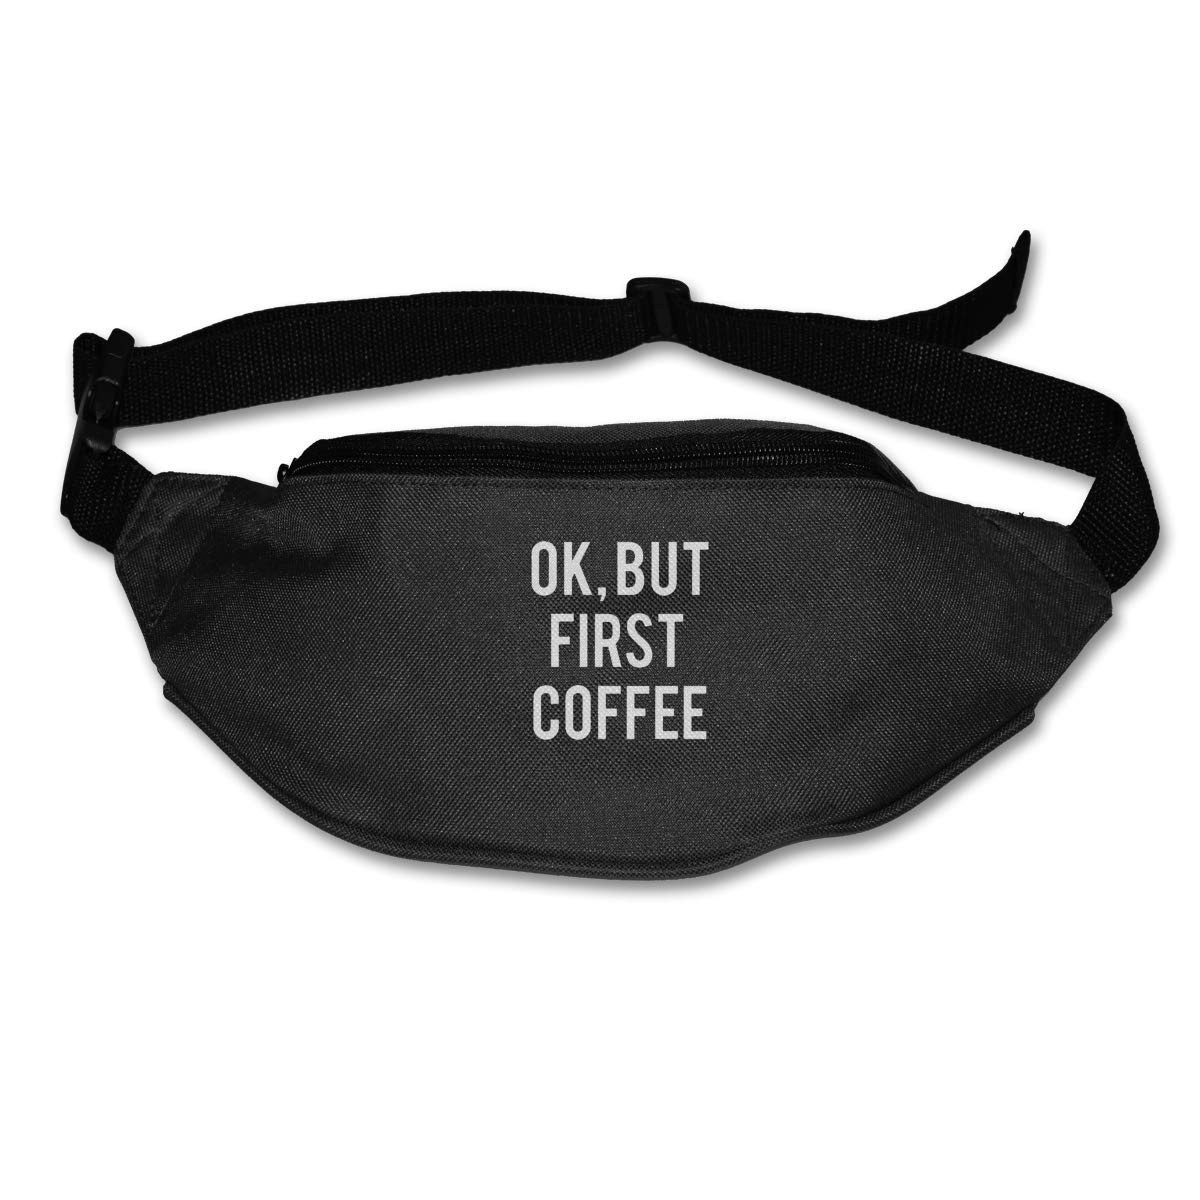 OK BUT FIRST Coffee 3 Sport Waist Bag Fanny Pack Adjustable For Hike